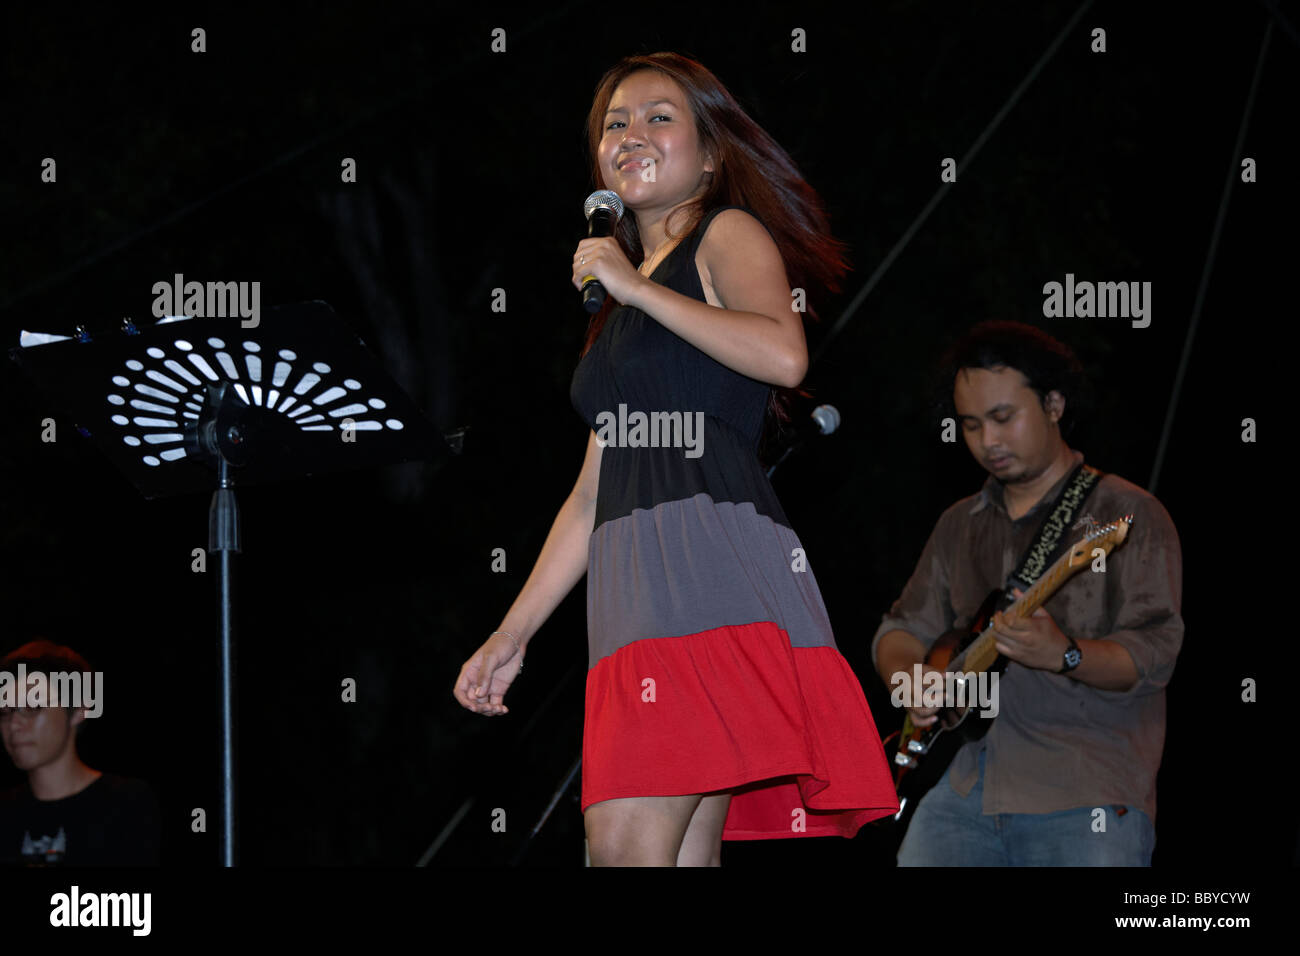 Female singer  Estrella performing on stage at the Hua Hin jazz festival 2009 Thailand S.E. Asia - Stock Image